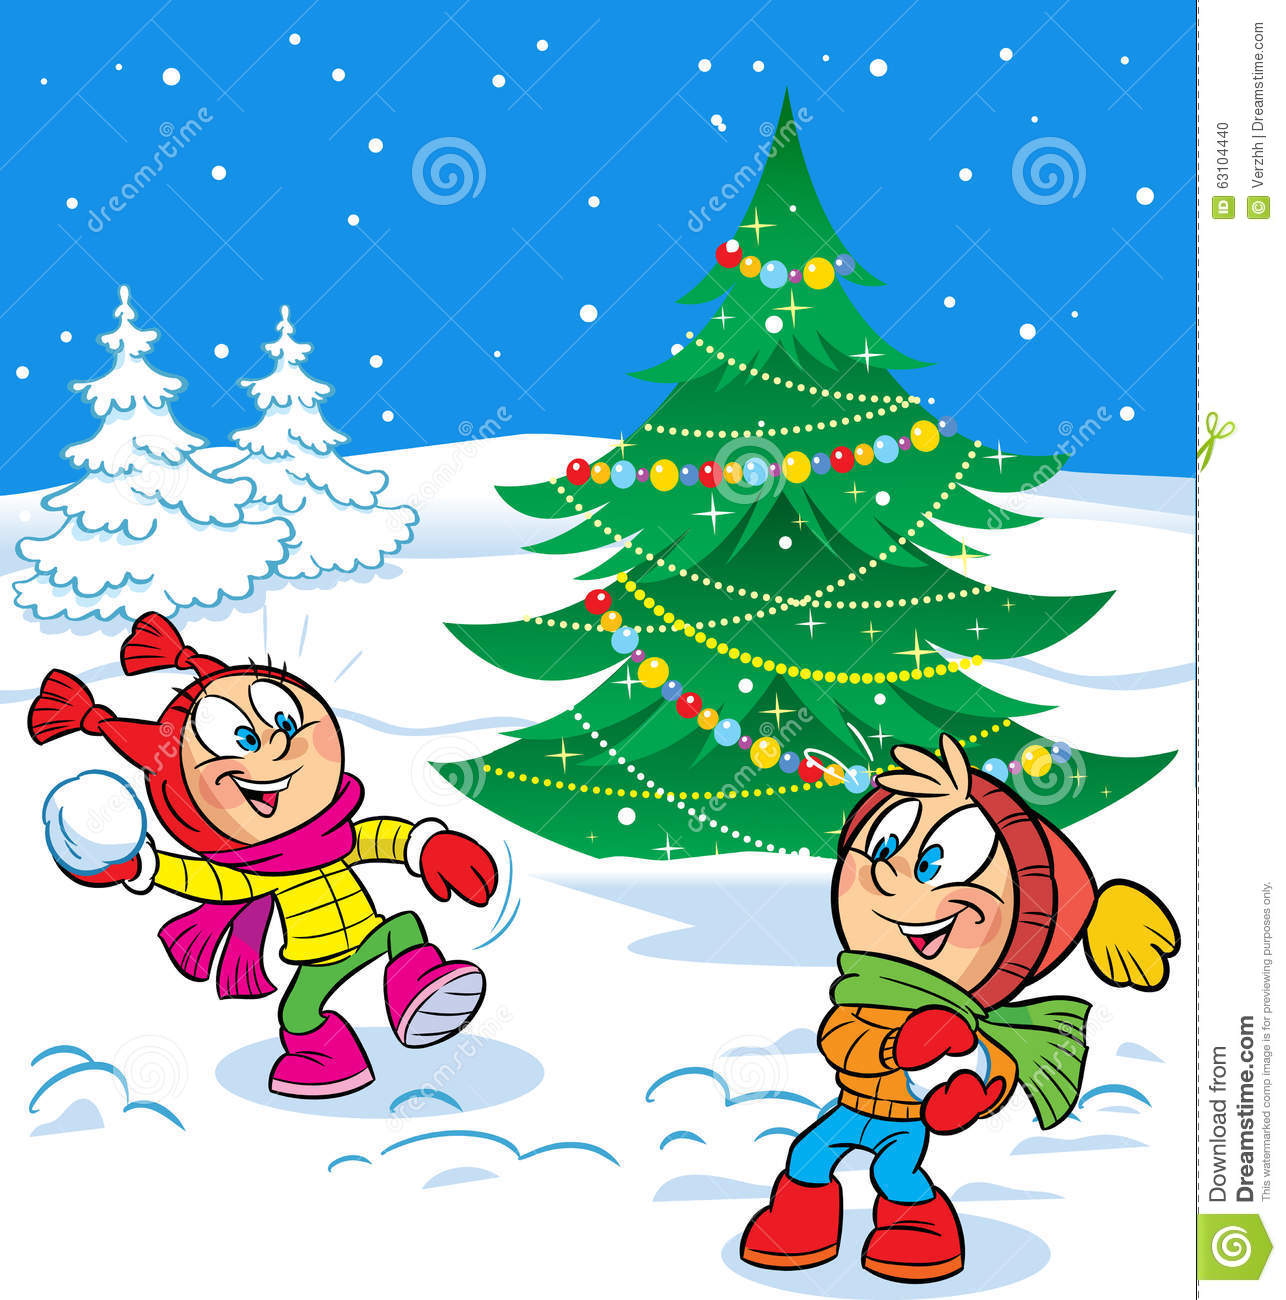 the illustration shows a fun game kids throwing snowballs on a background of the christmas tree vector illustration done in cartoon style - Christmas Shows For Kids